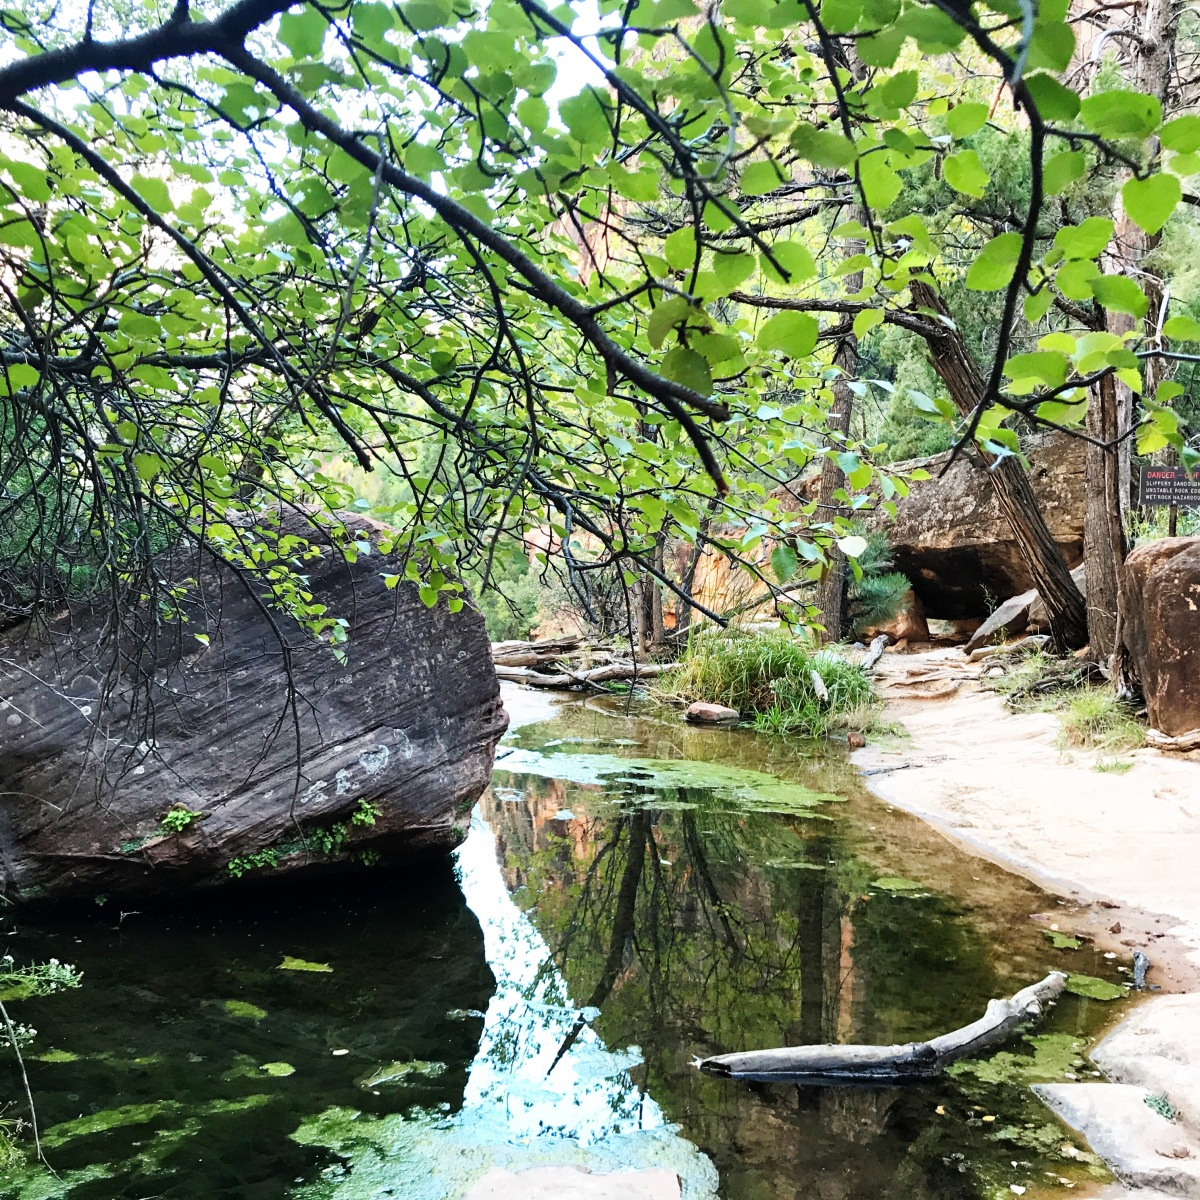 Hiking The Emerald Pools Of Zion National Park Barry